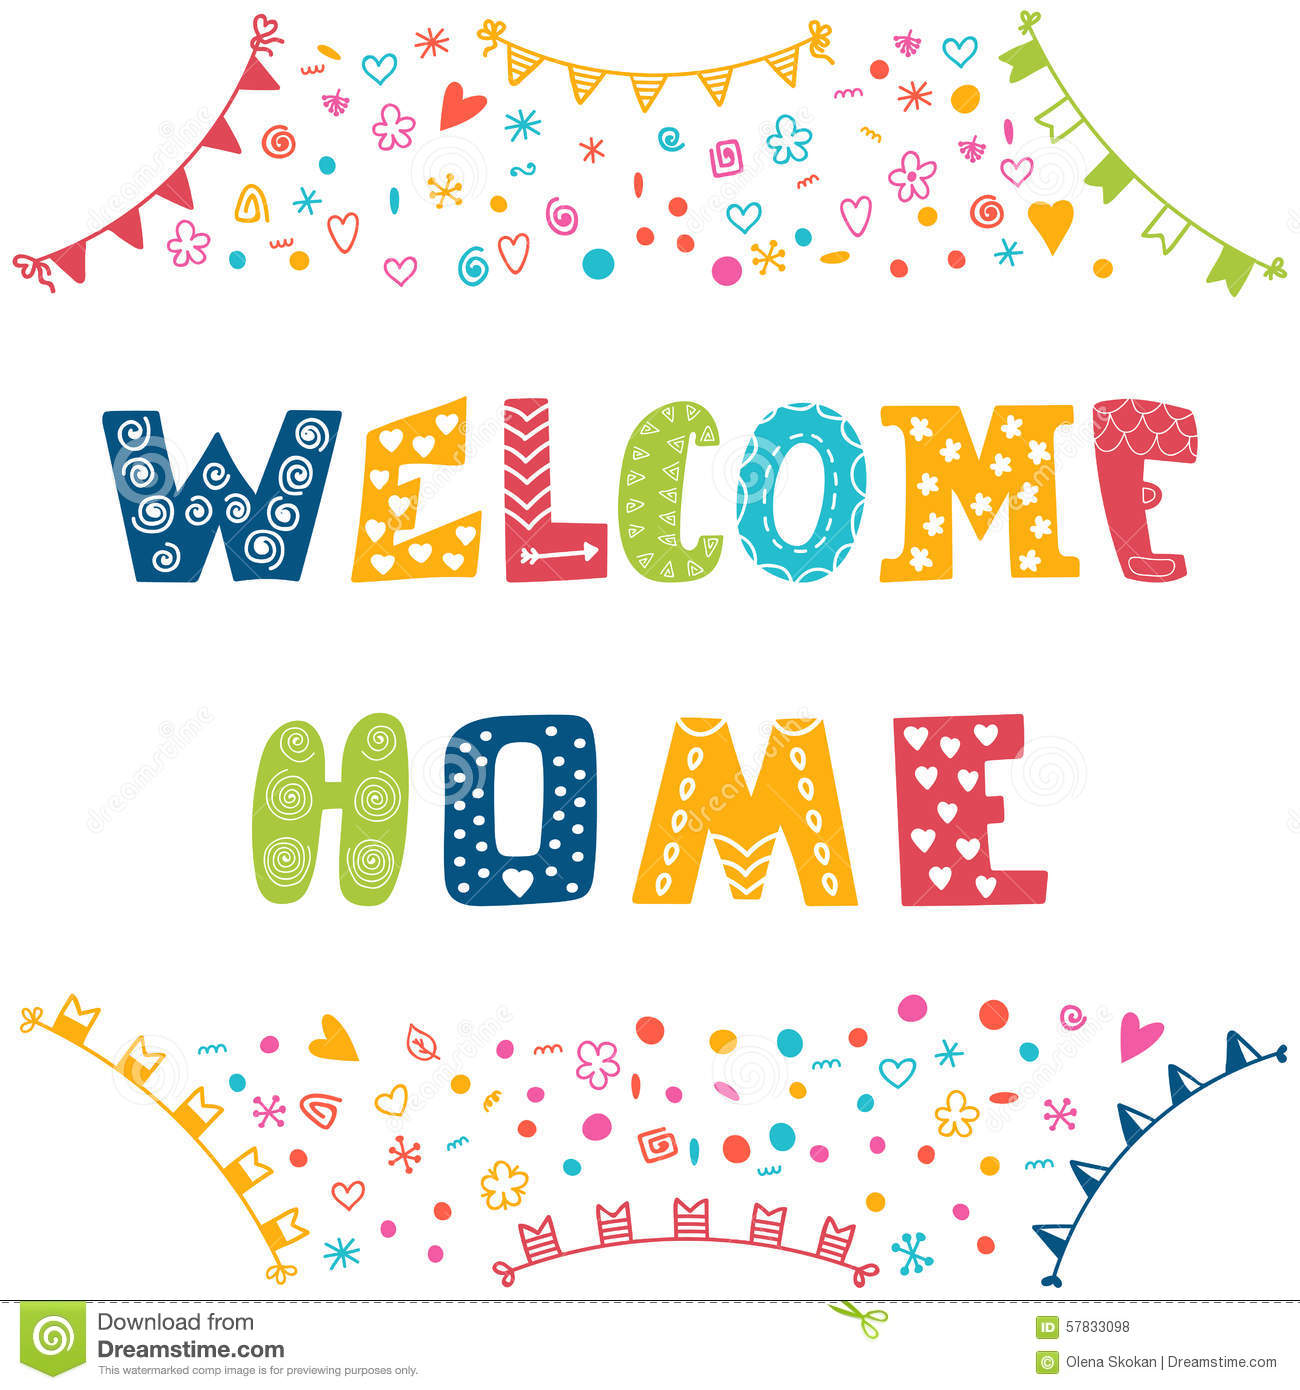 Welcome home text with colorful design elements Royalty Free Stock Photos